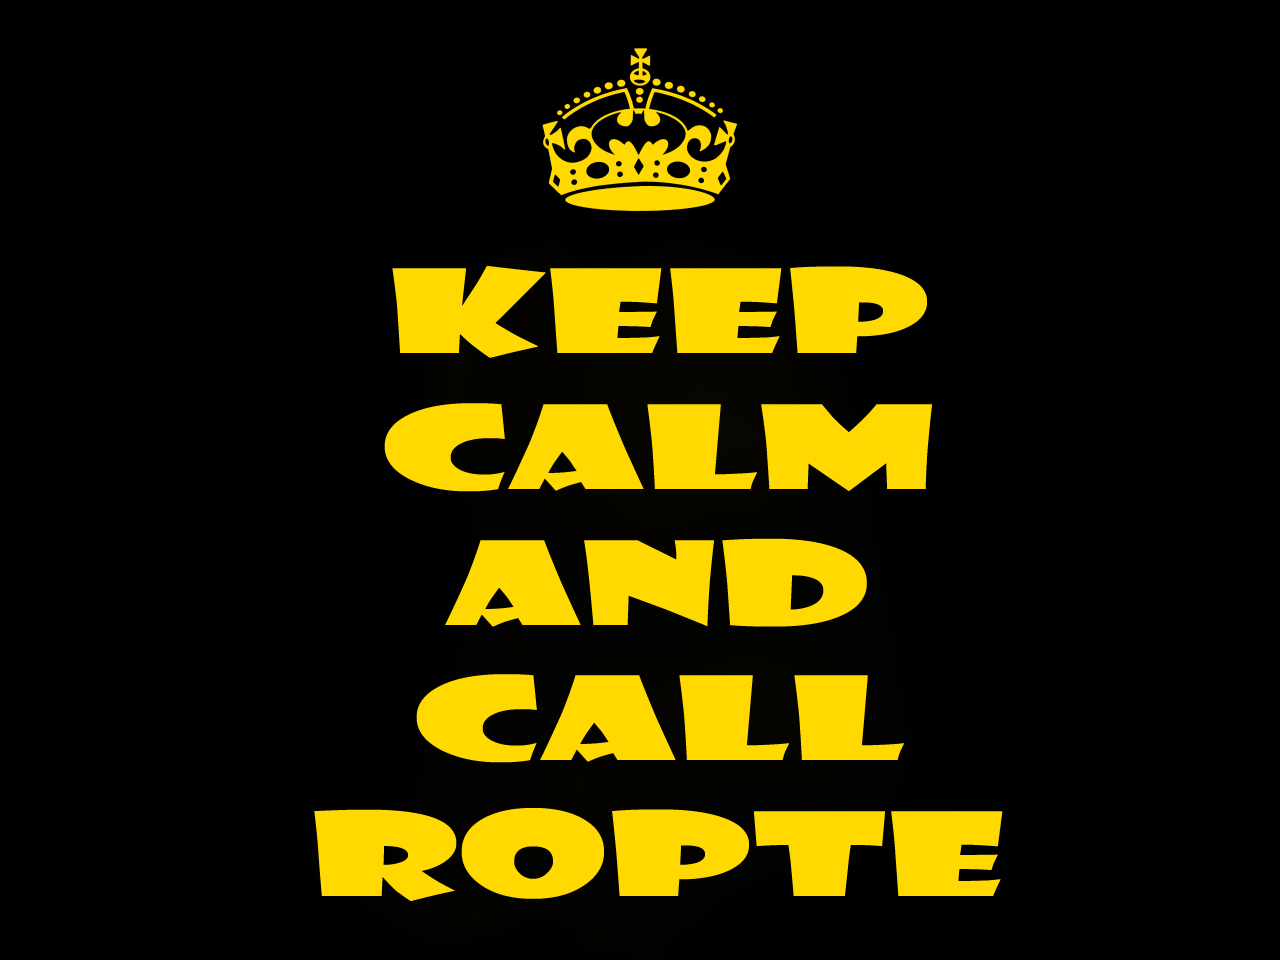 ropte